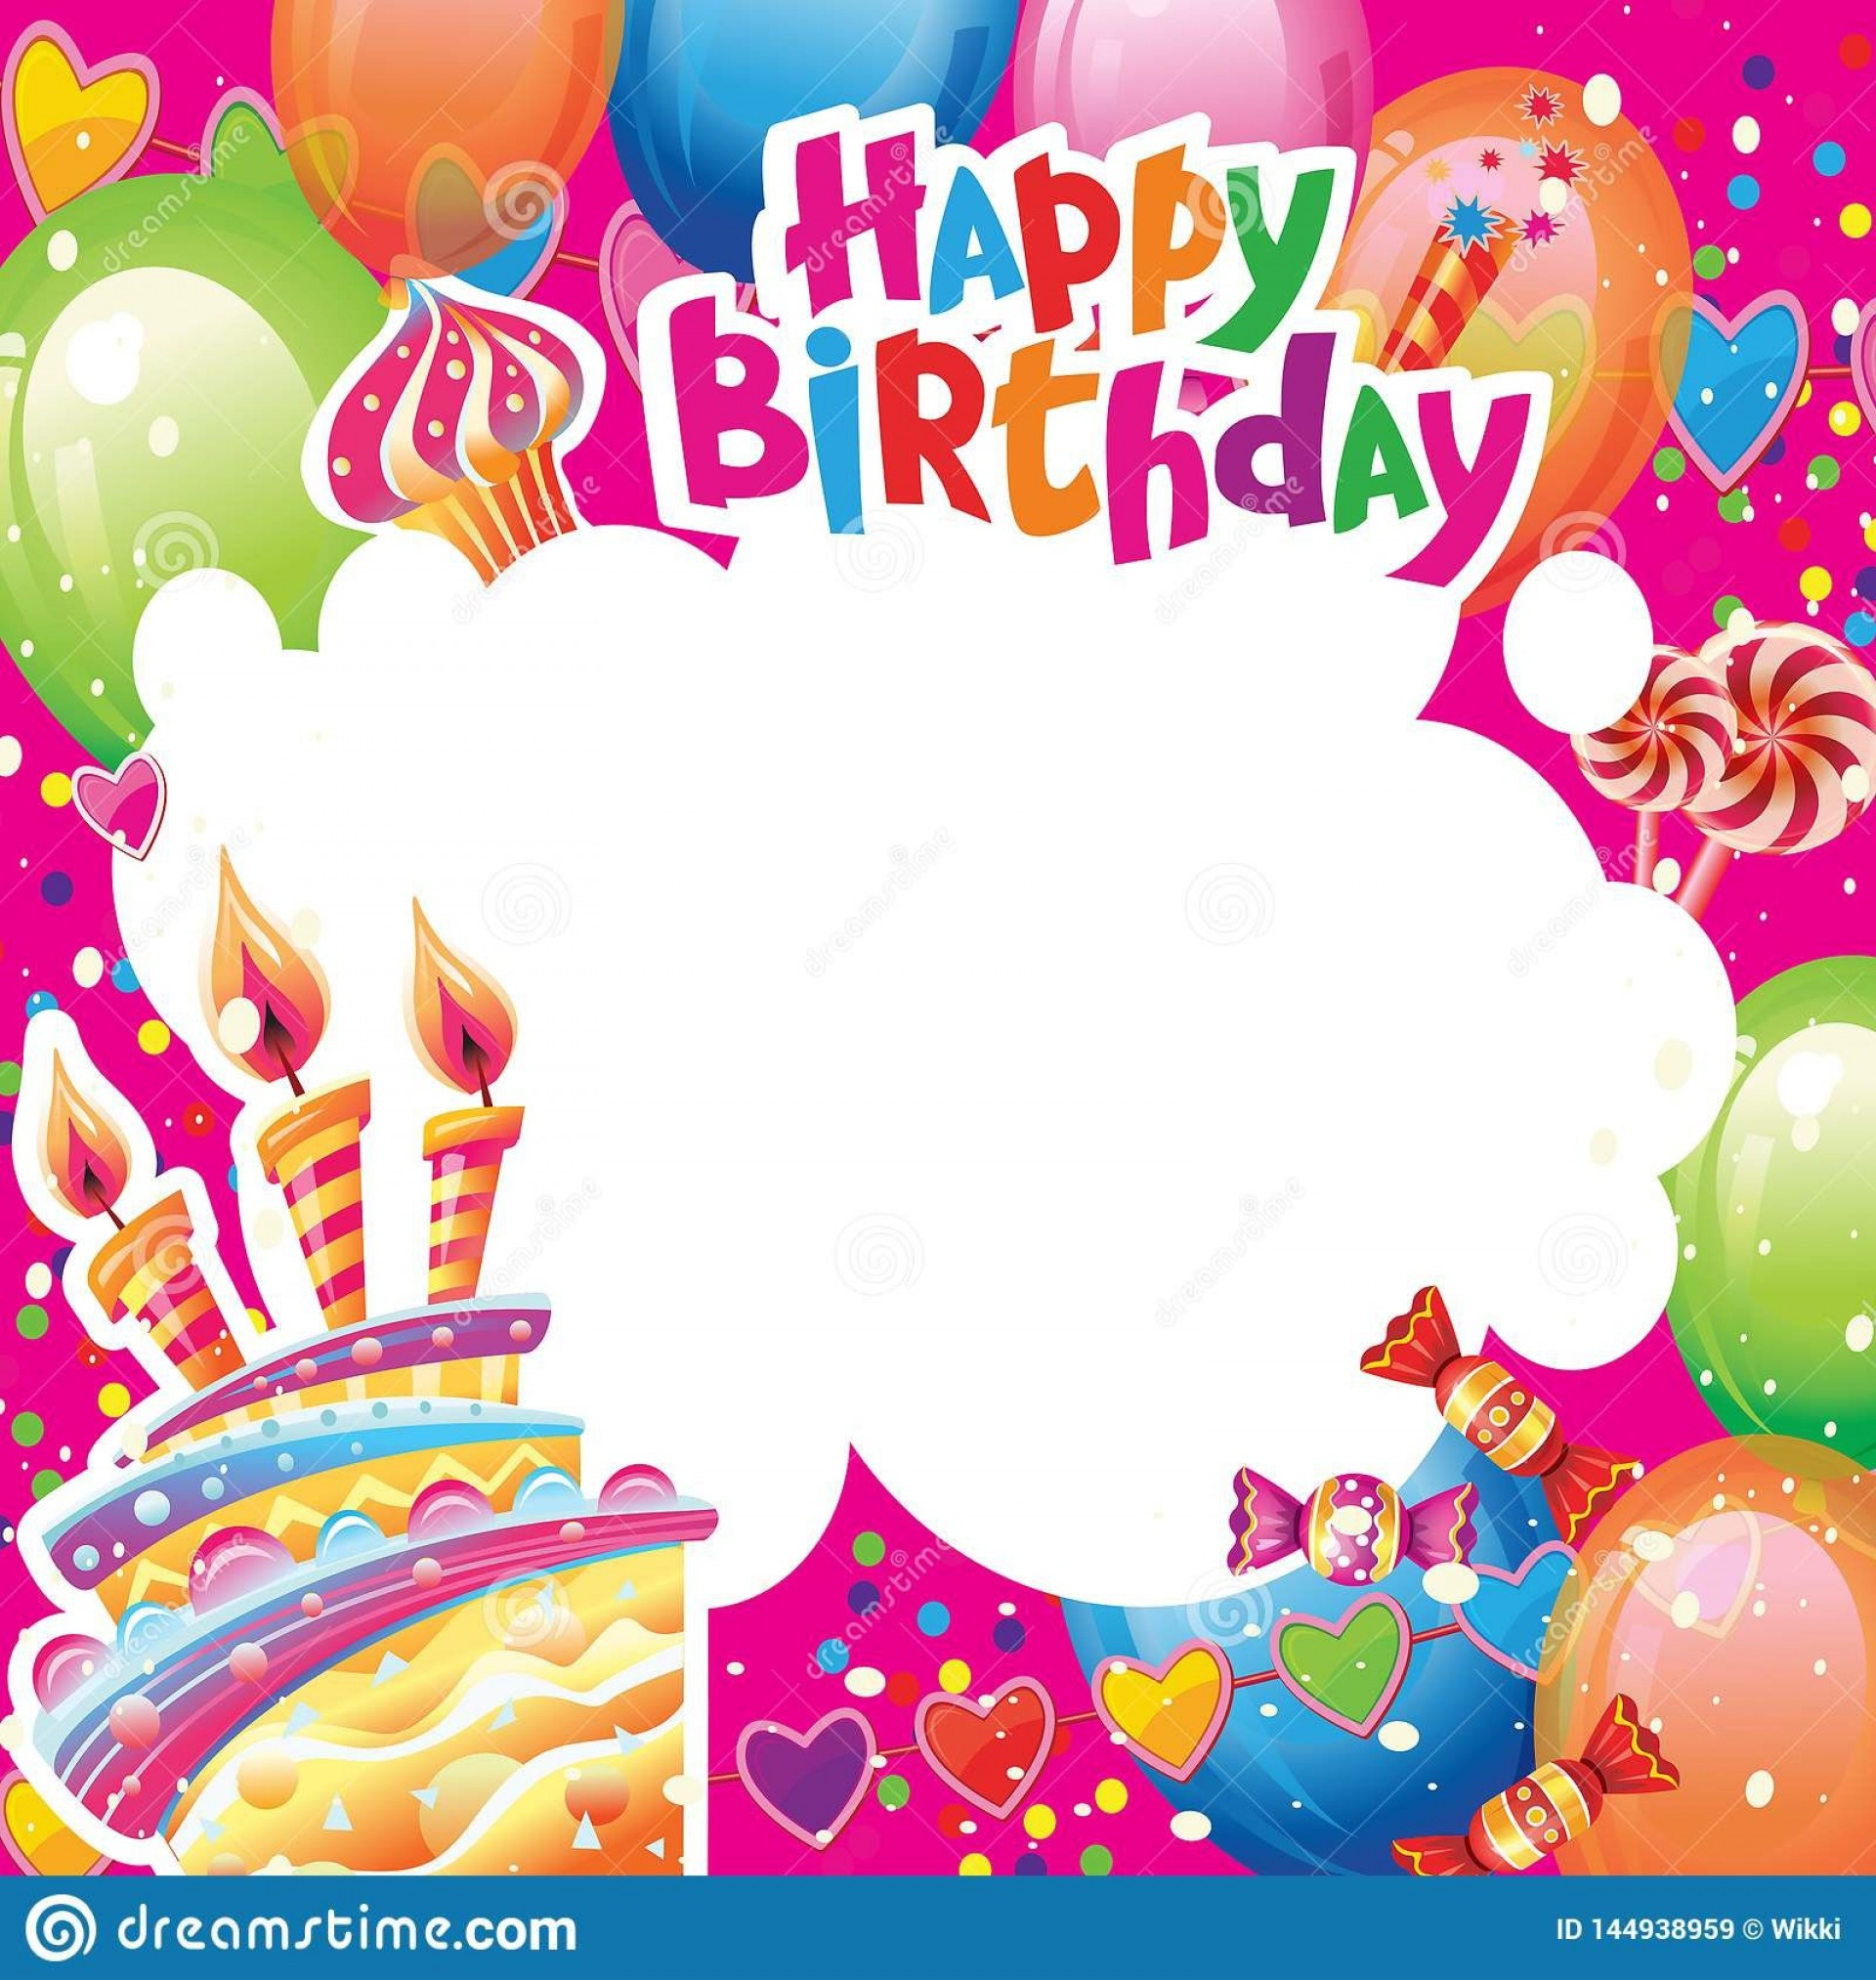 009 Imposing Template For Birthday Card Highest Clarity  Happy Invitation1920